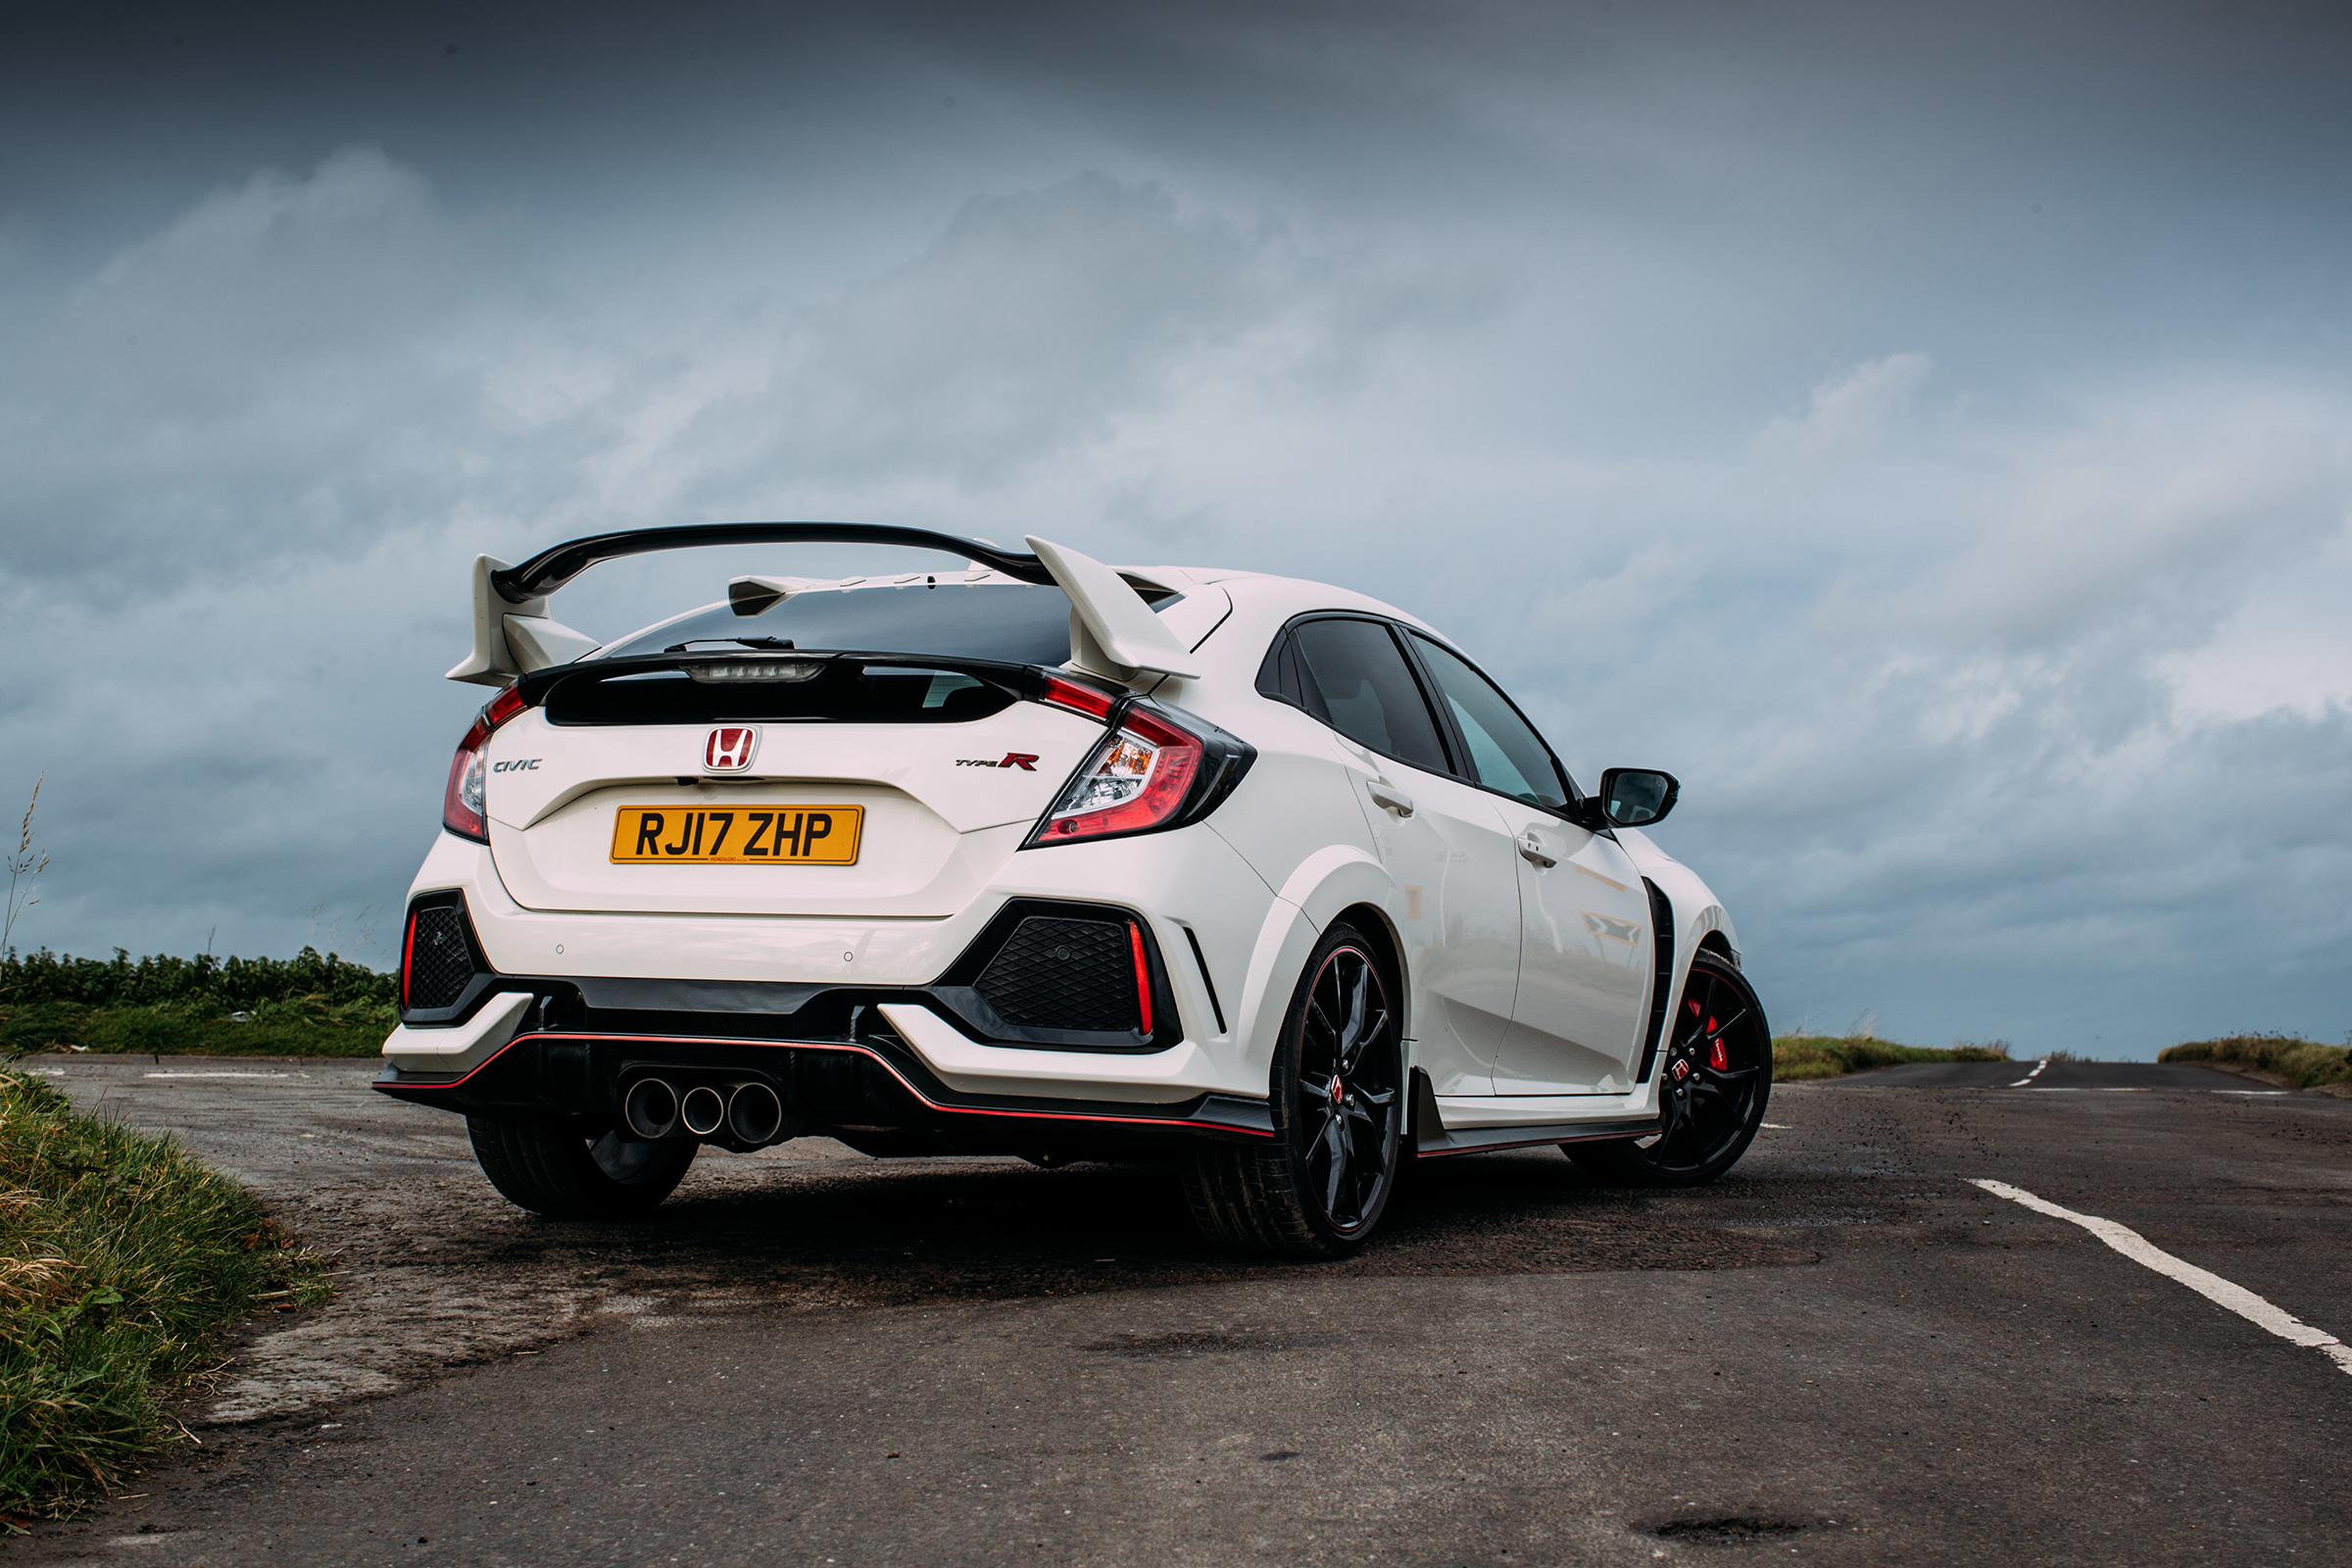 Honda Civic Type R review - ignore the looks, this is an